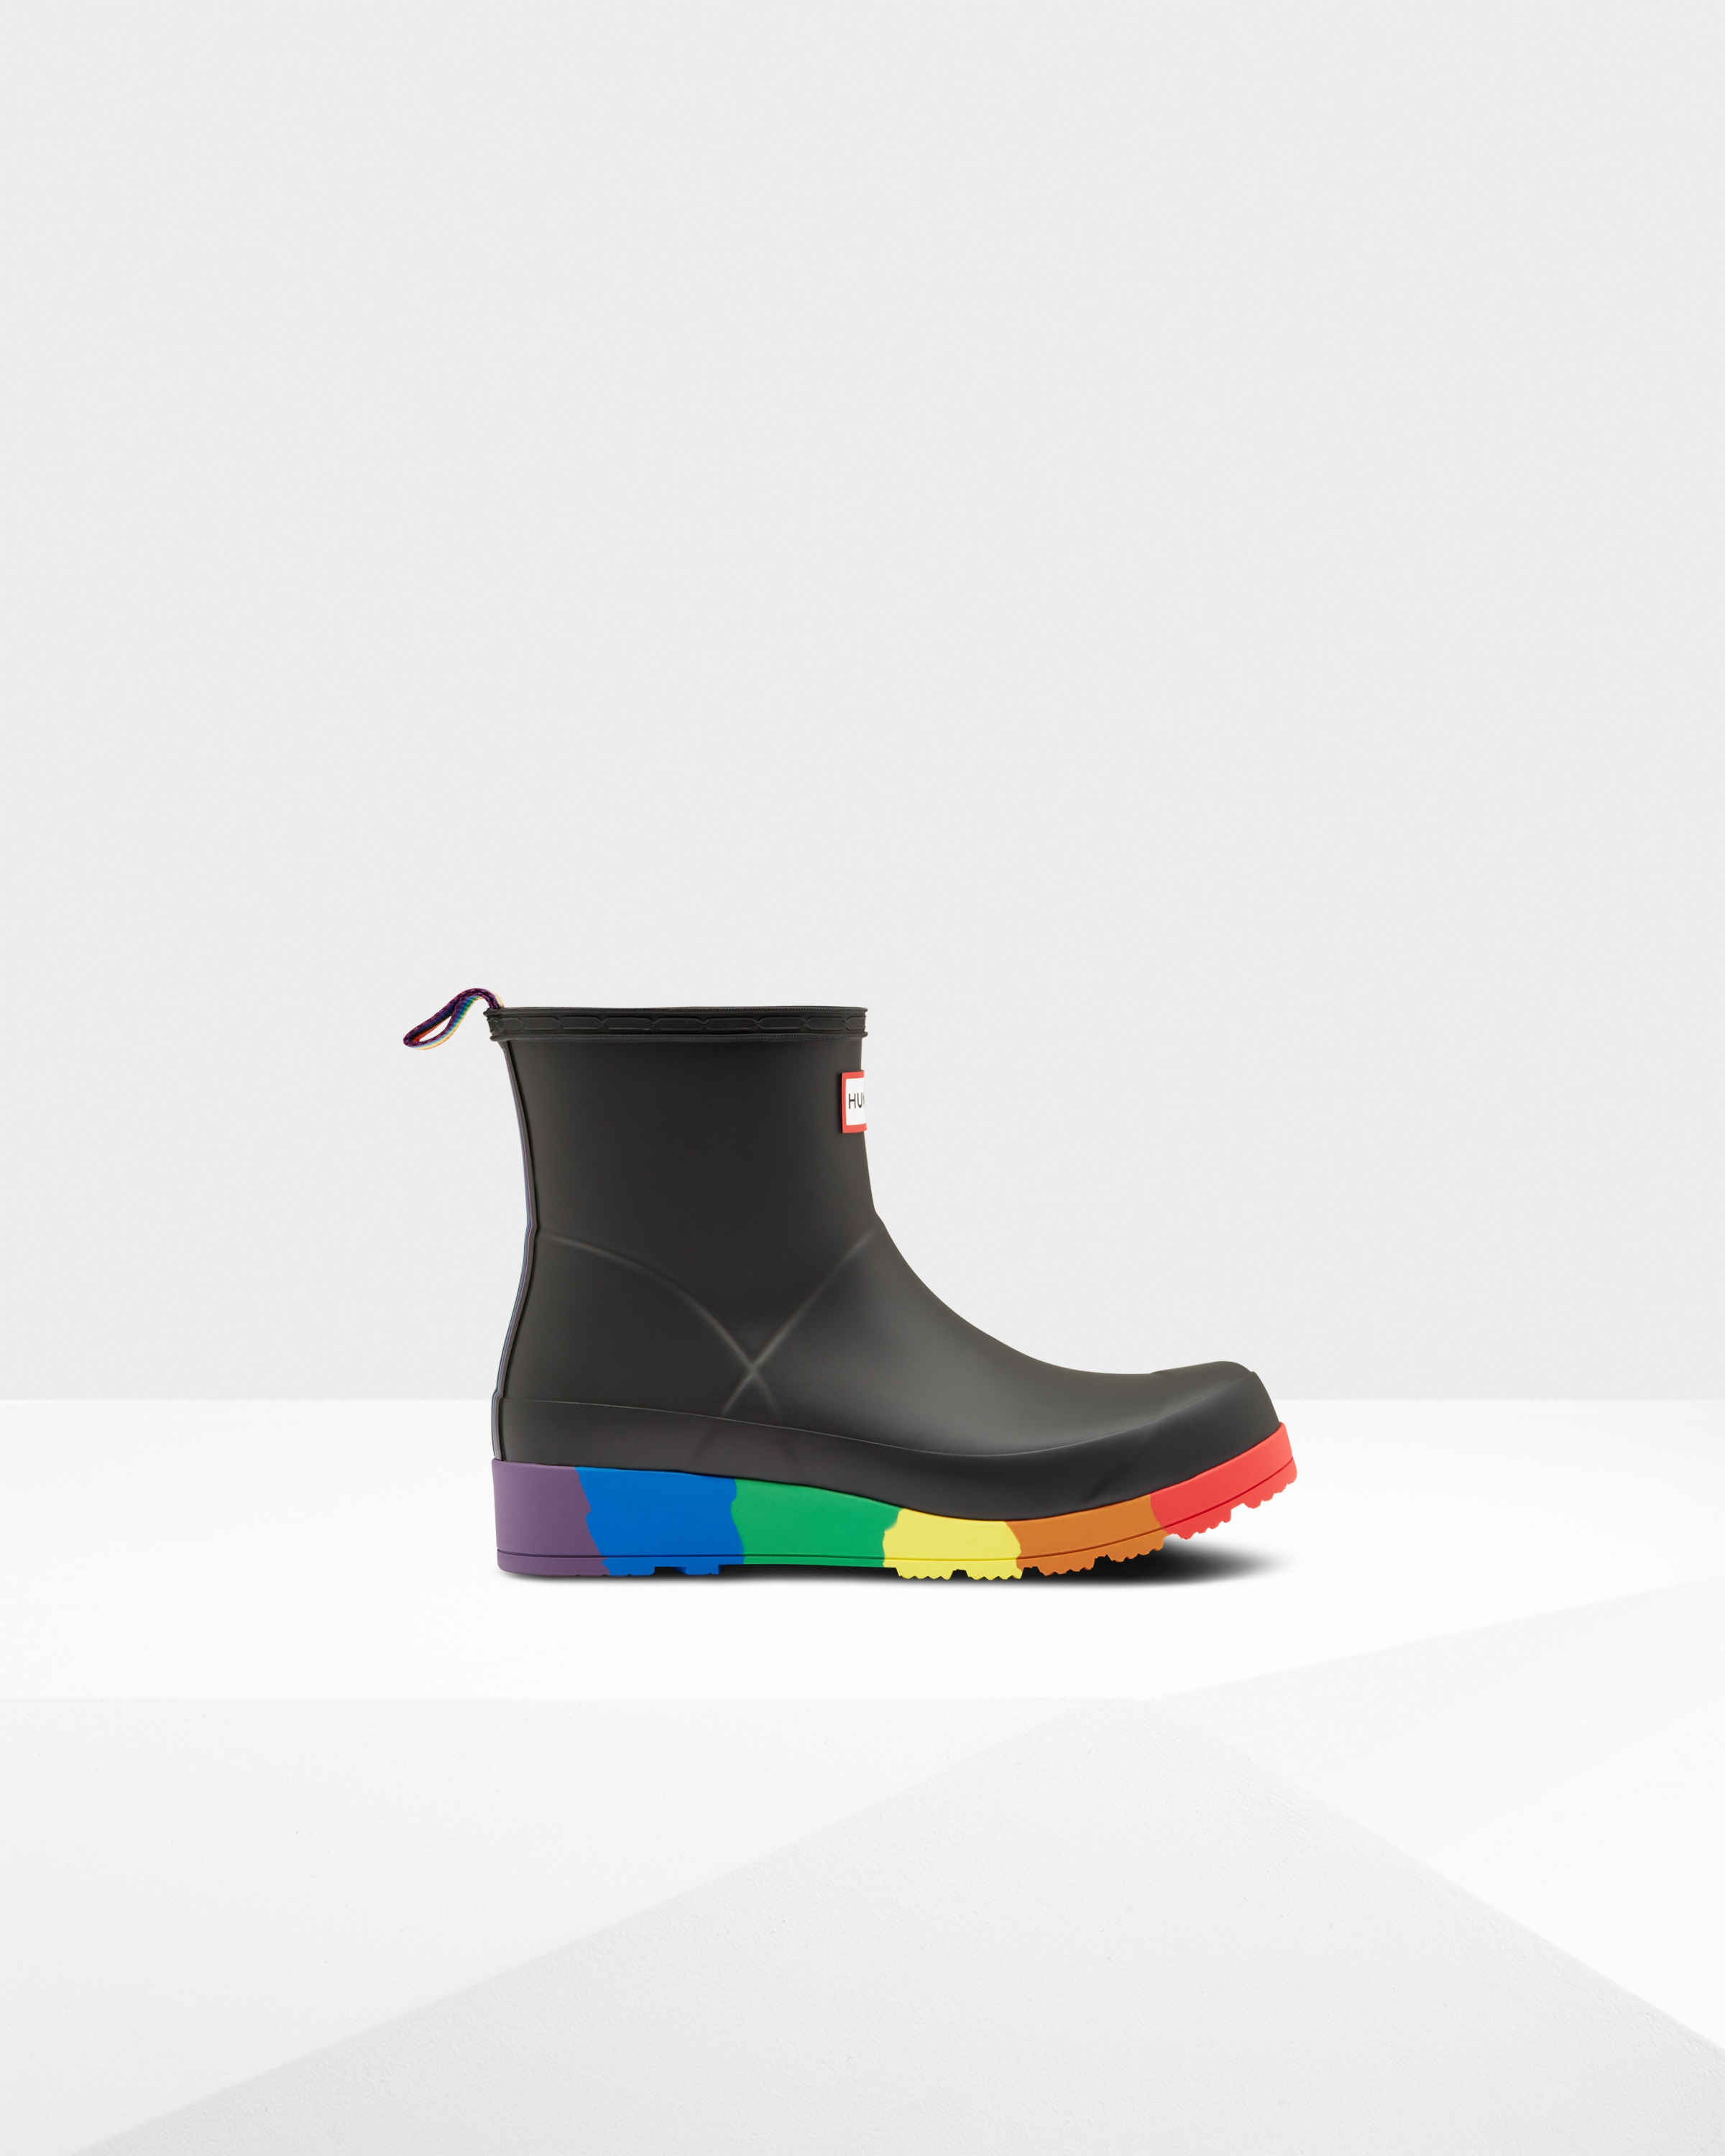 Womens Black Original Pride Play Flatform Wellington Boots | Official Hunter Boots Site